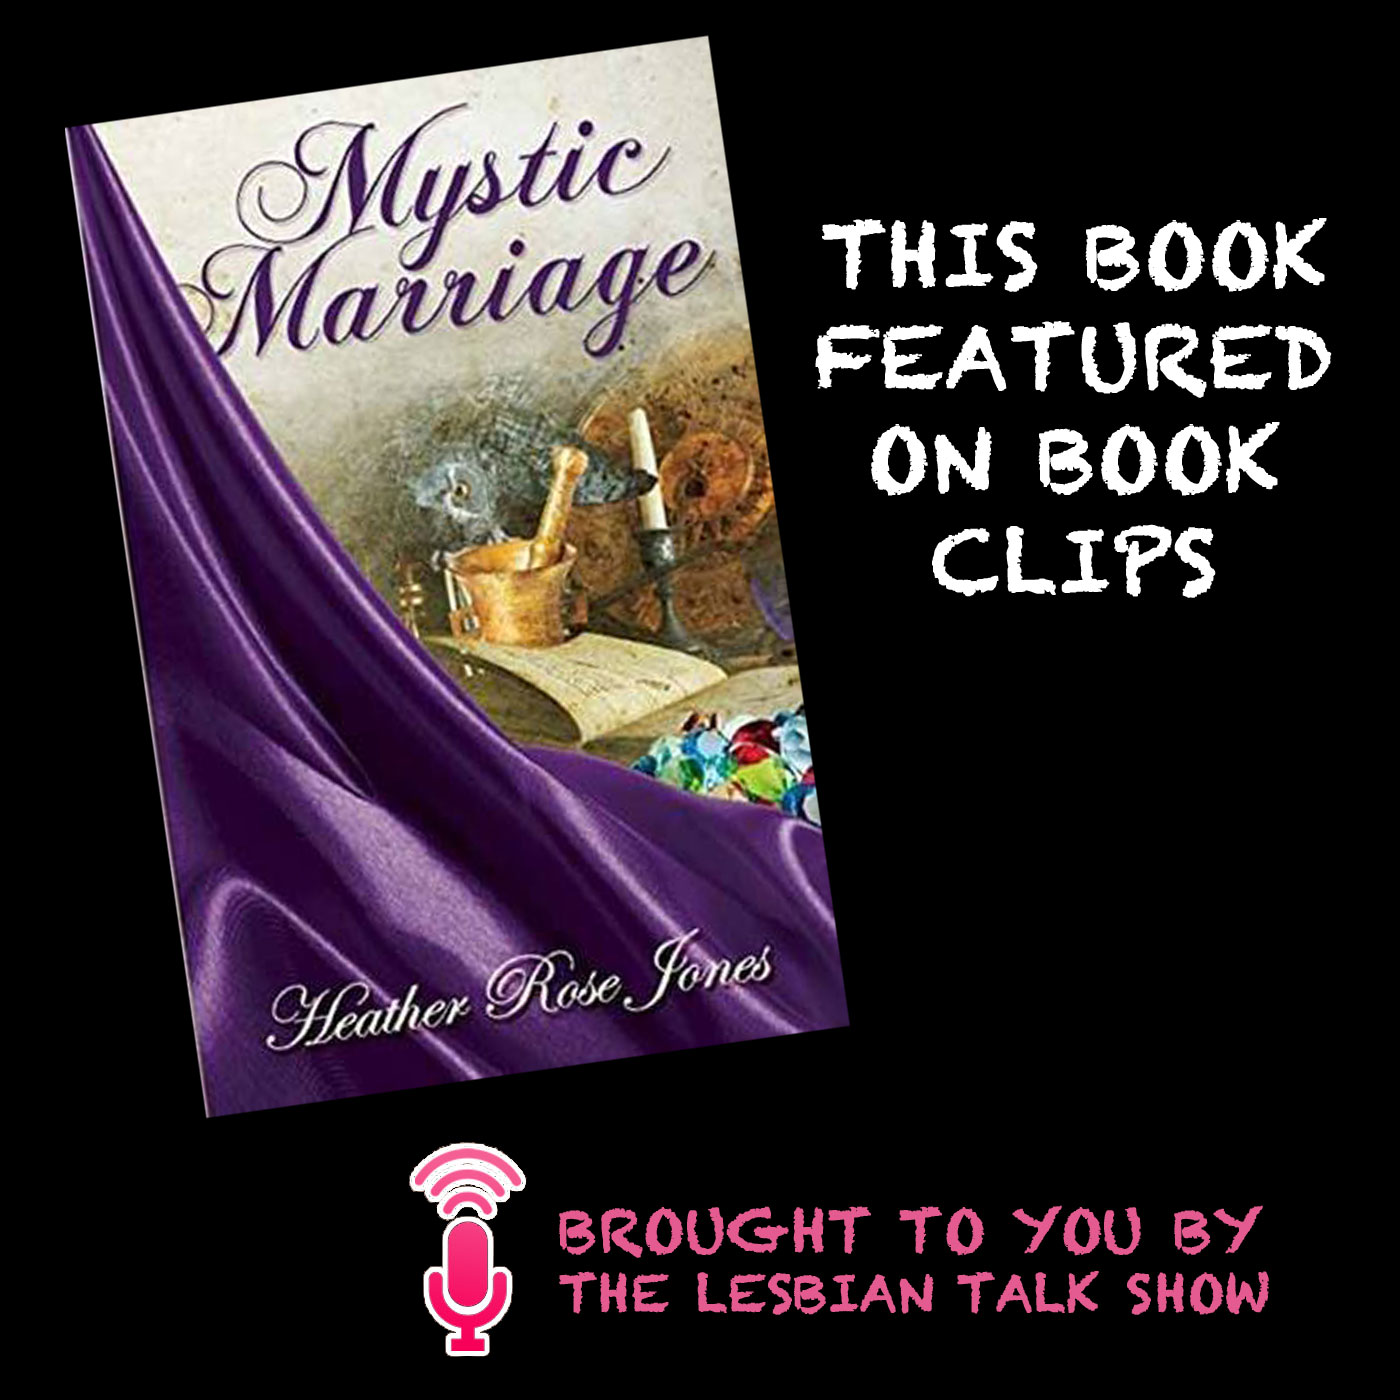 Book Clips: Mystic Marriage by Heather Rose Jones